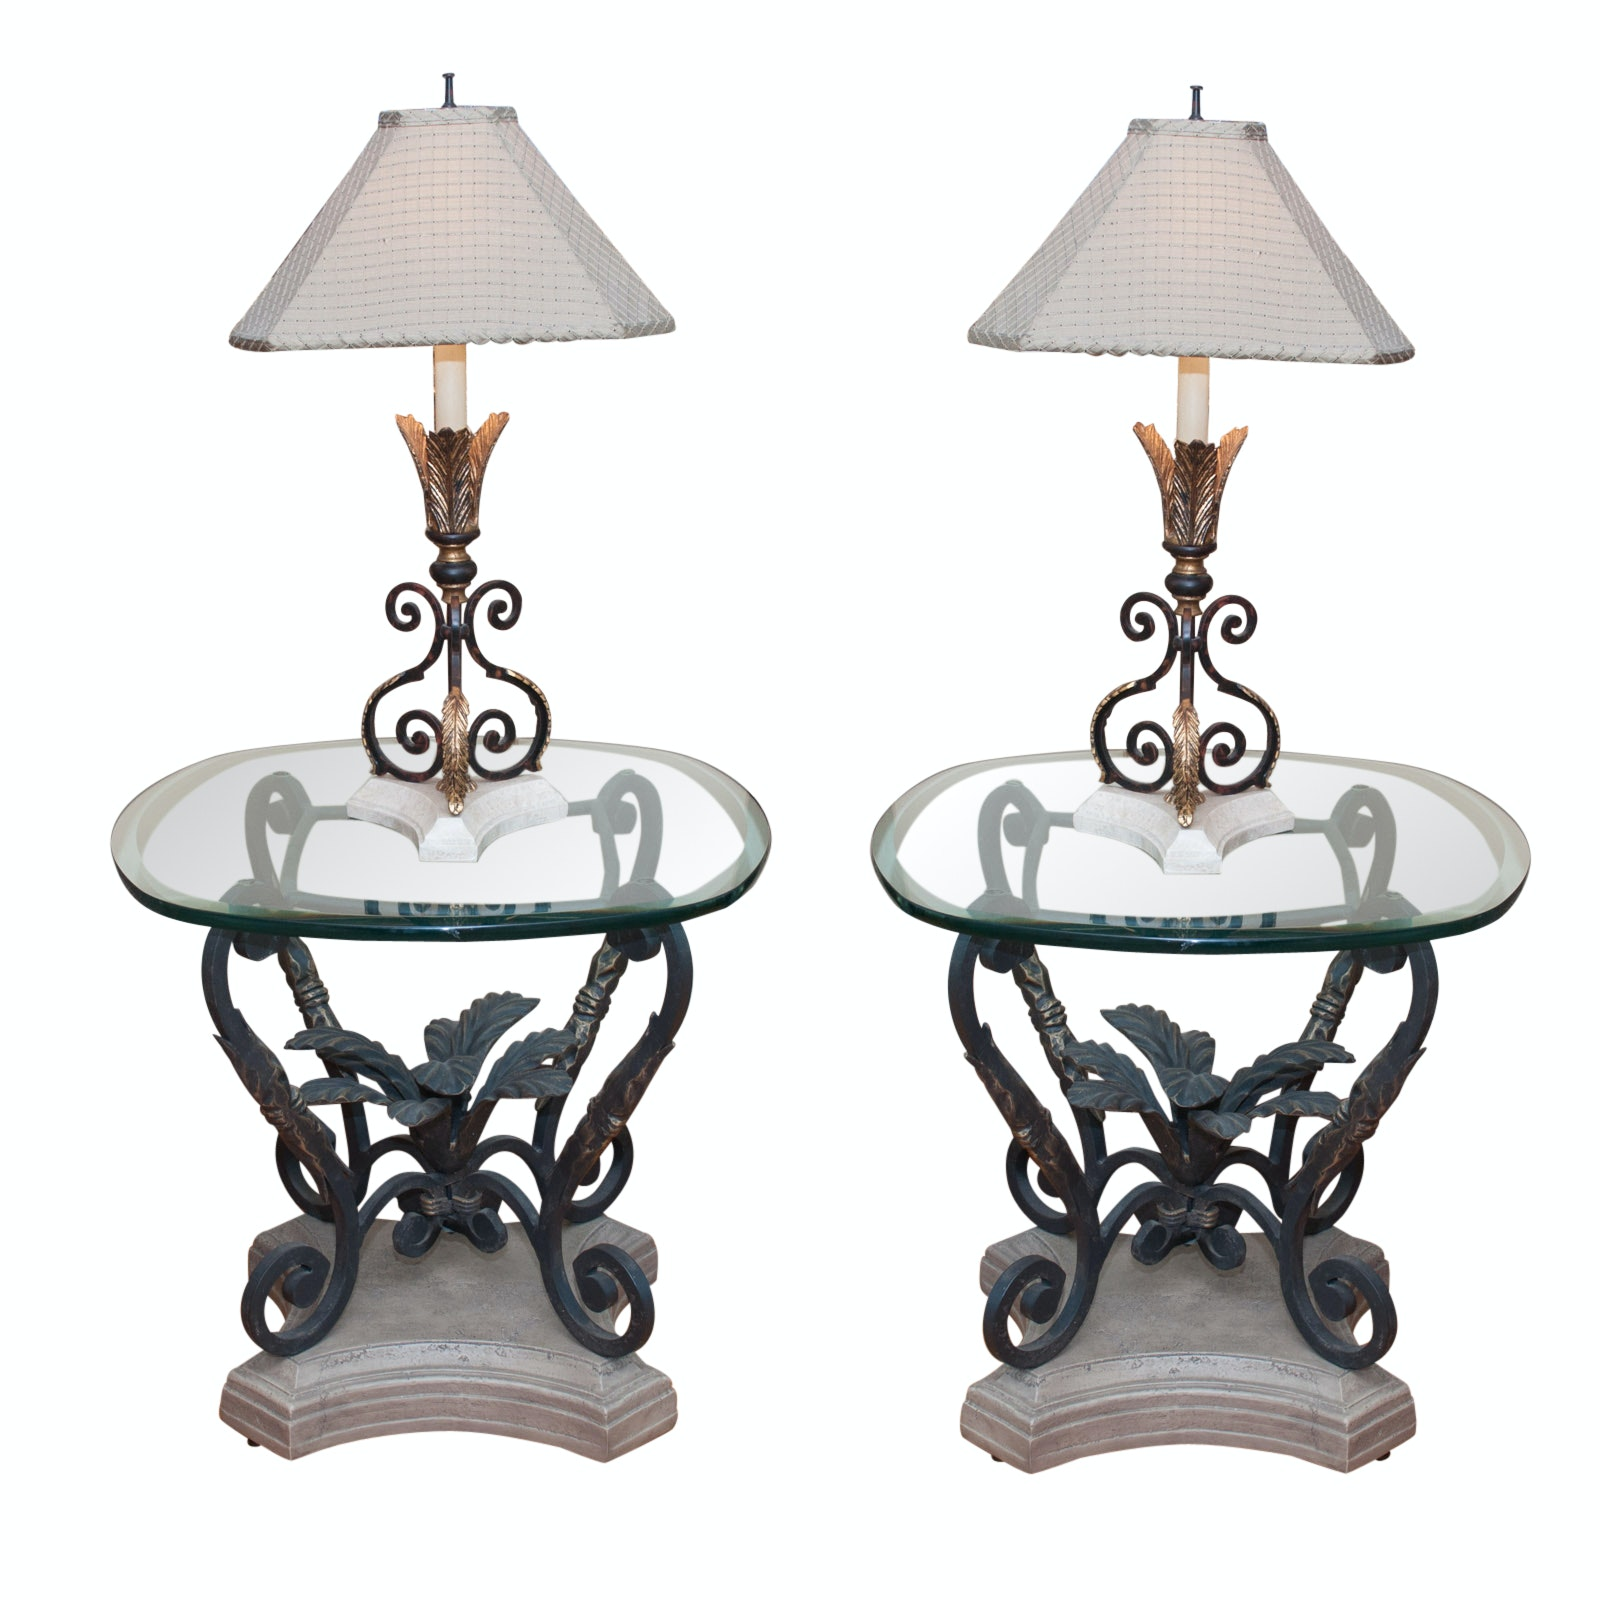 Pair of Glass-Top Accent Tables with Lamps